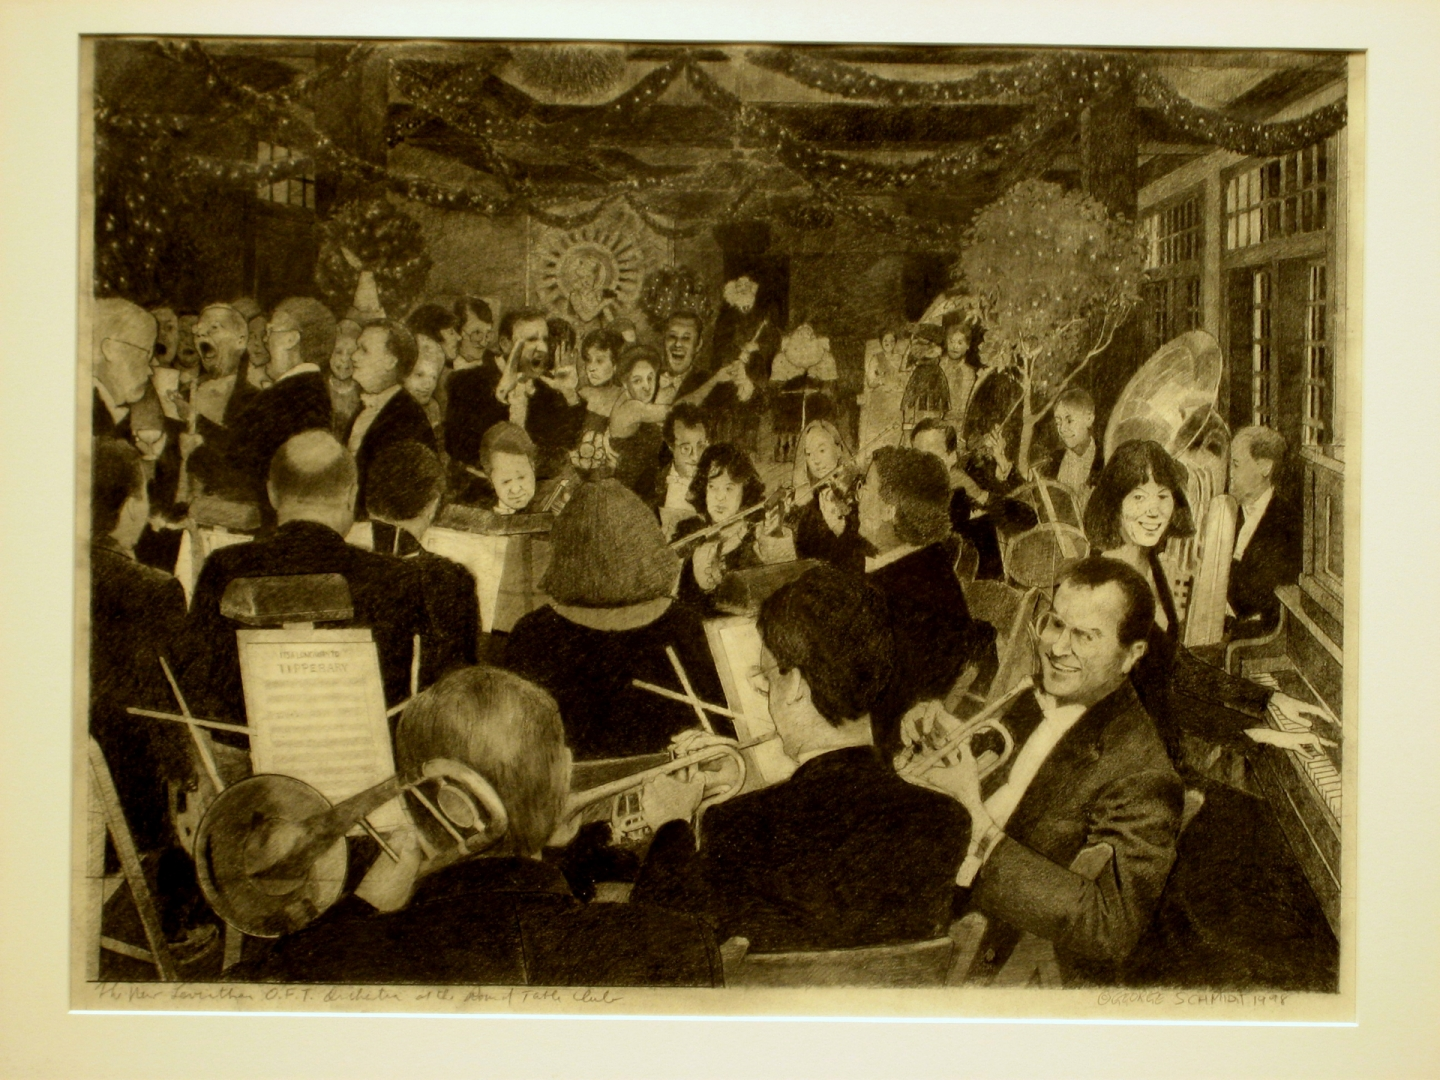 New Leviathan Orchestra at the Arthurians Ball :: Carbon pencil on rag paper